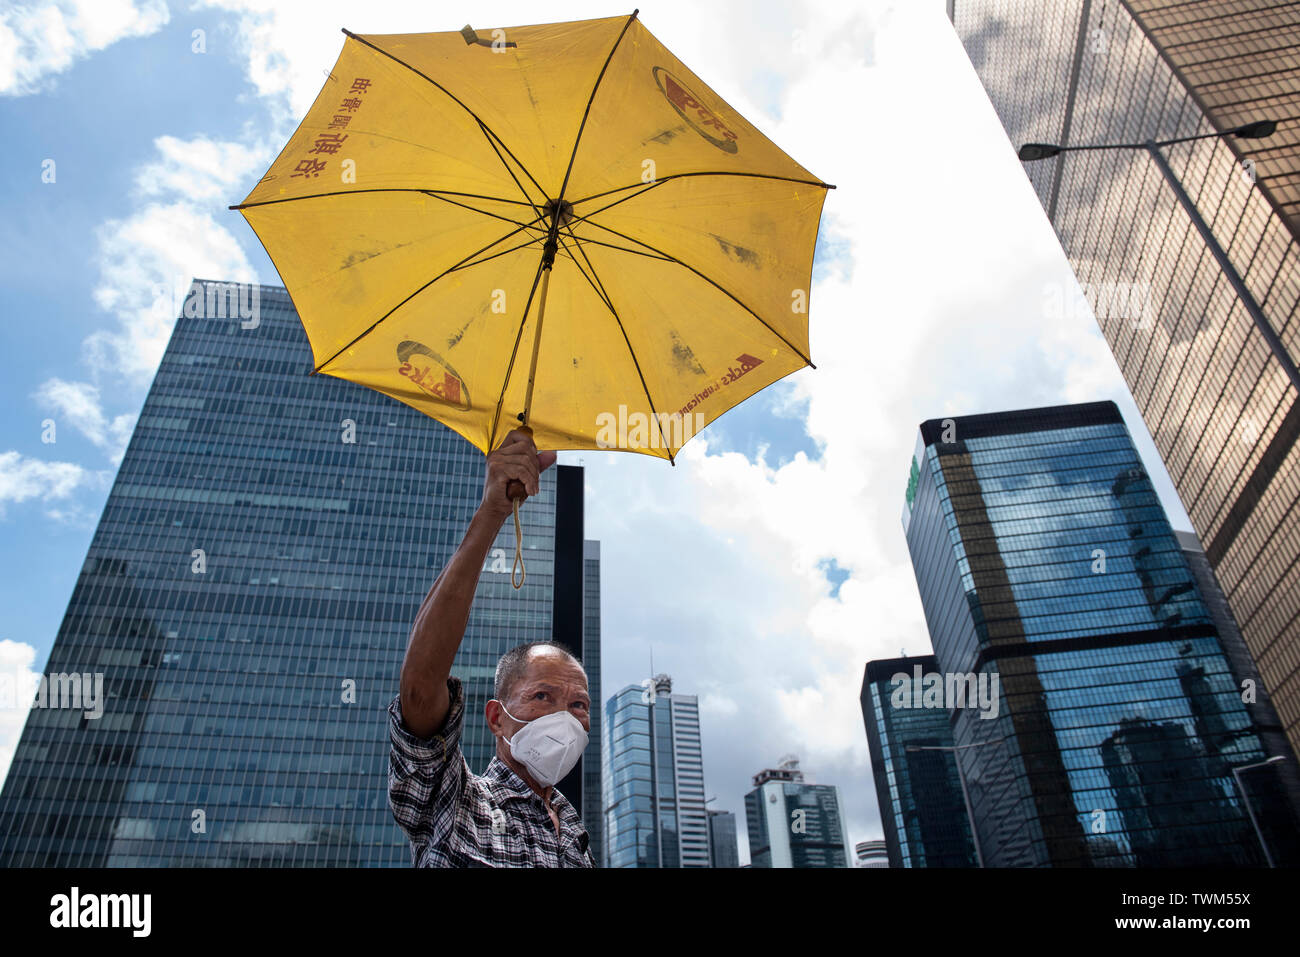 A protester holds a yellow umbrella, a symbol used during the Umbrella Movement, during the latest demonstration in Hong Kong. Despite the Chief Executive Carrie Lam's attempt to ease the heightened tension by agreeing to suspend the controversial extradition bill, student groups and union has continue the protest against Hong Kong government. The protesters called for the withdrawal of the controversial extradition bill, the release and non-prosecution of the people arrested due to the cause, investigation of whether excessive force had been used by the police on June 12, and the resignation - Stock Image